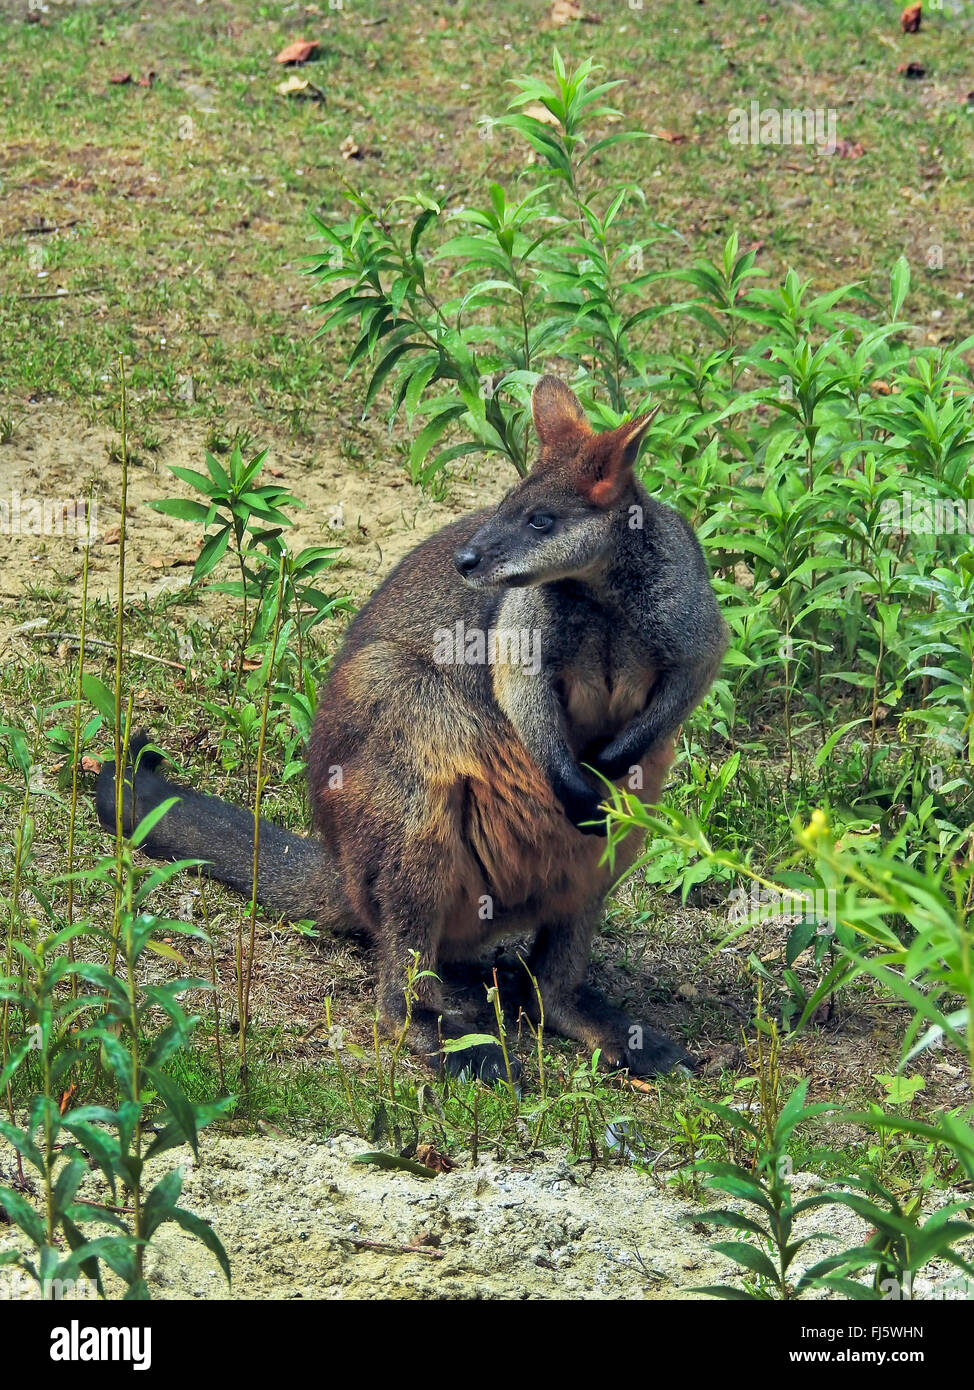 swamp wallaby, black-tail wallaby (Wallabia bicolor), side glance - Stock Image